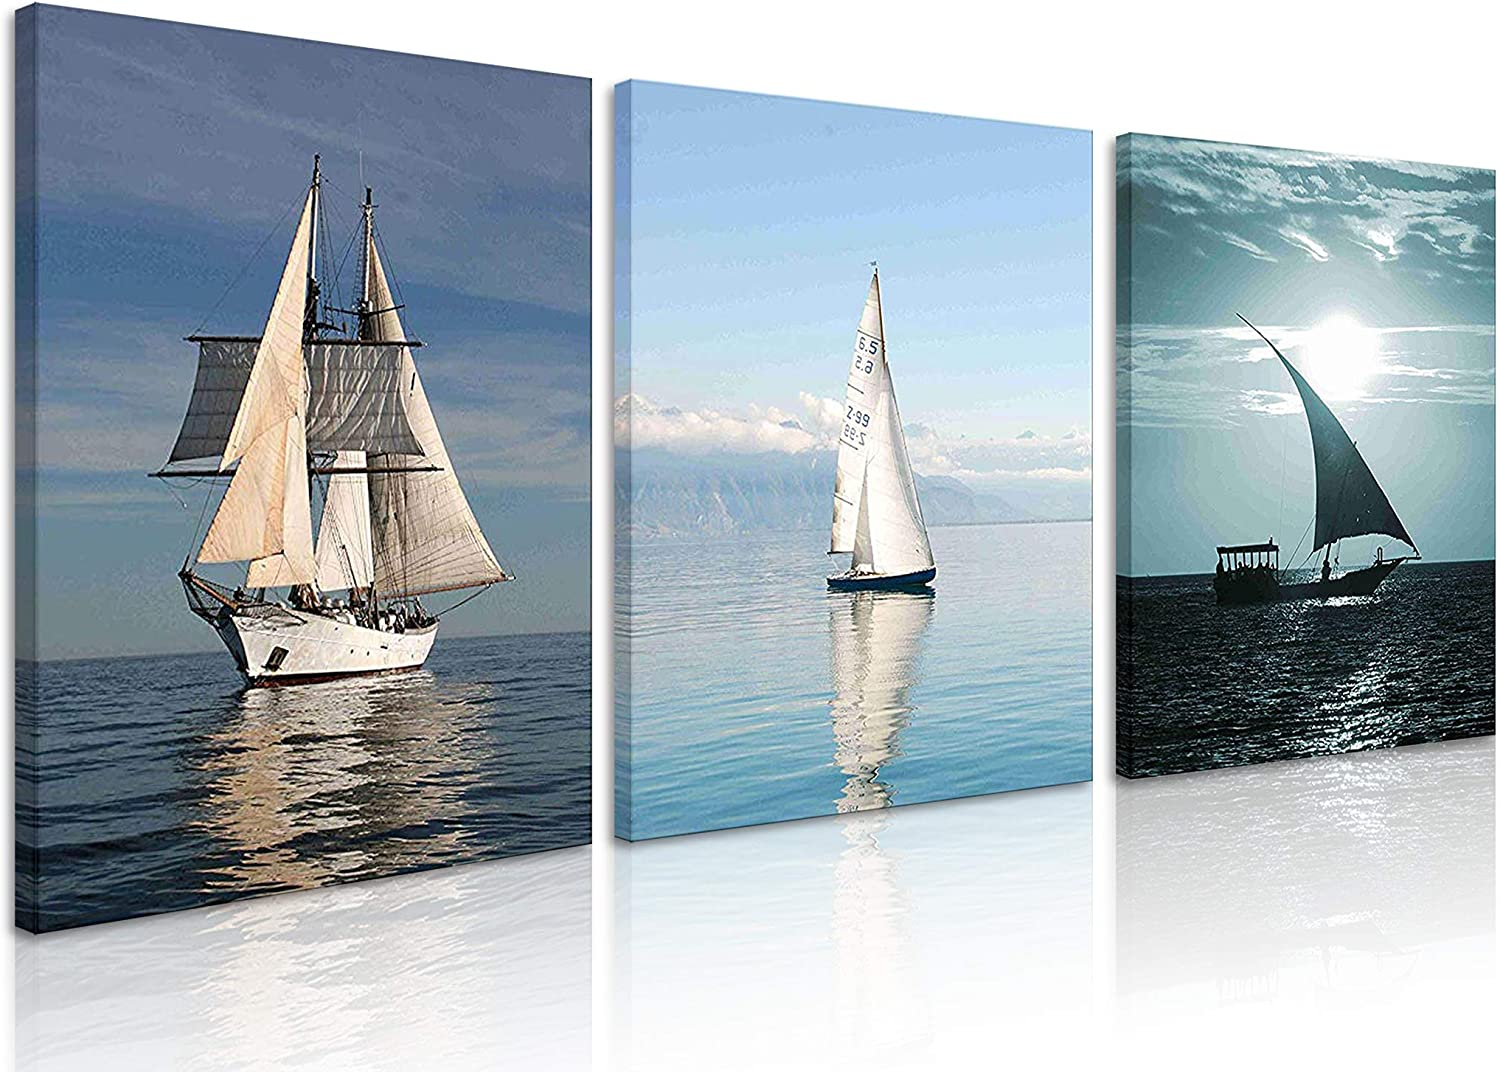 Natural art White Sailing Green Sea Paintings Prints on Canvas Wooden Framed Landscape Wall Art for Wall Decoration Ready to Hang (12x16inx3, White Sailing)